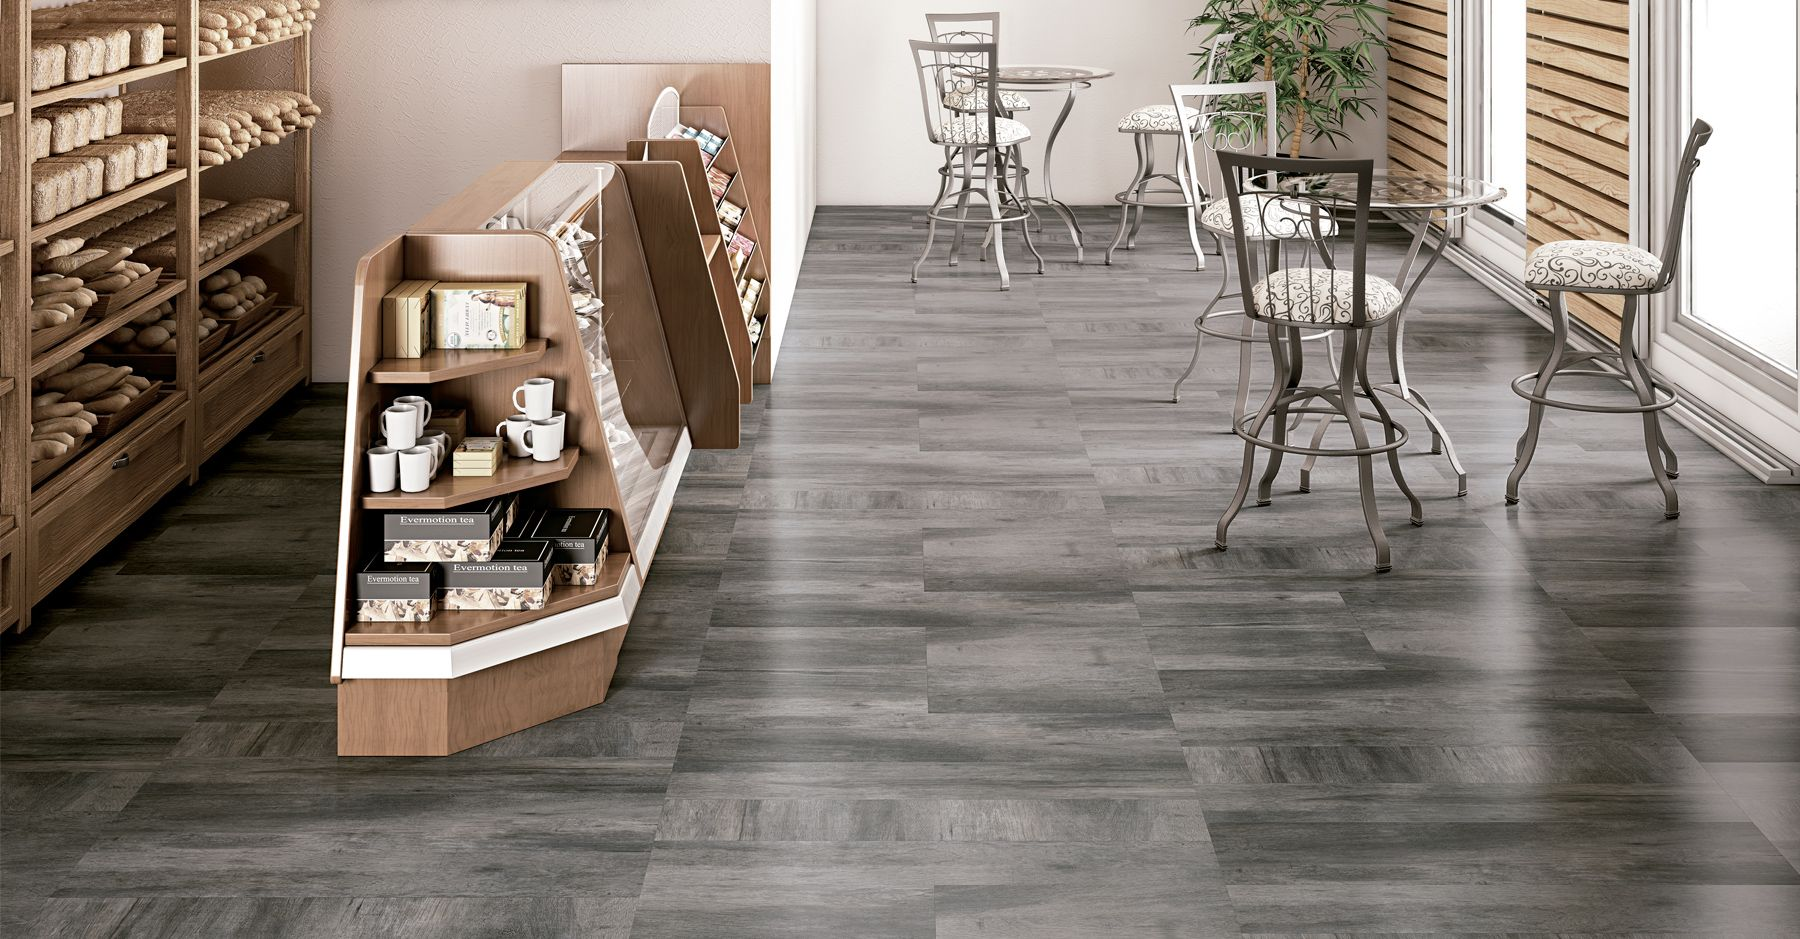 Cedrick collection wood look ceramic tiles by roca cedrick wood look ceramic tiles by roca dailygadgetfo Images